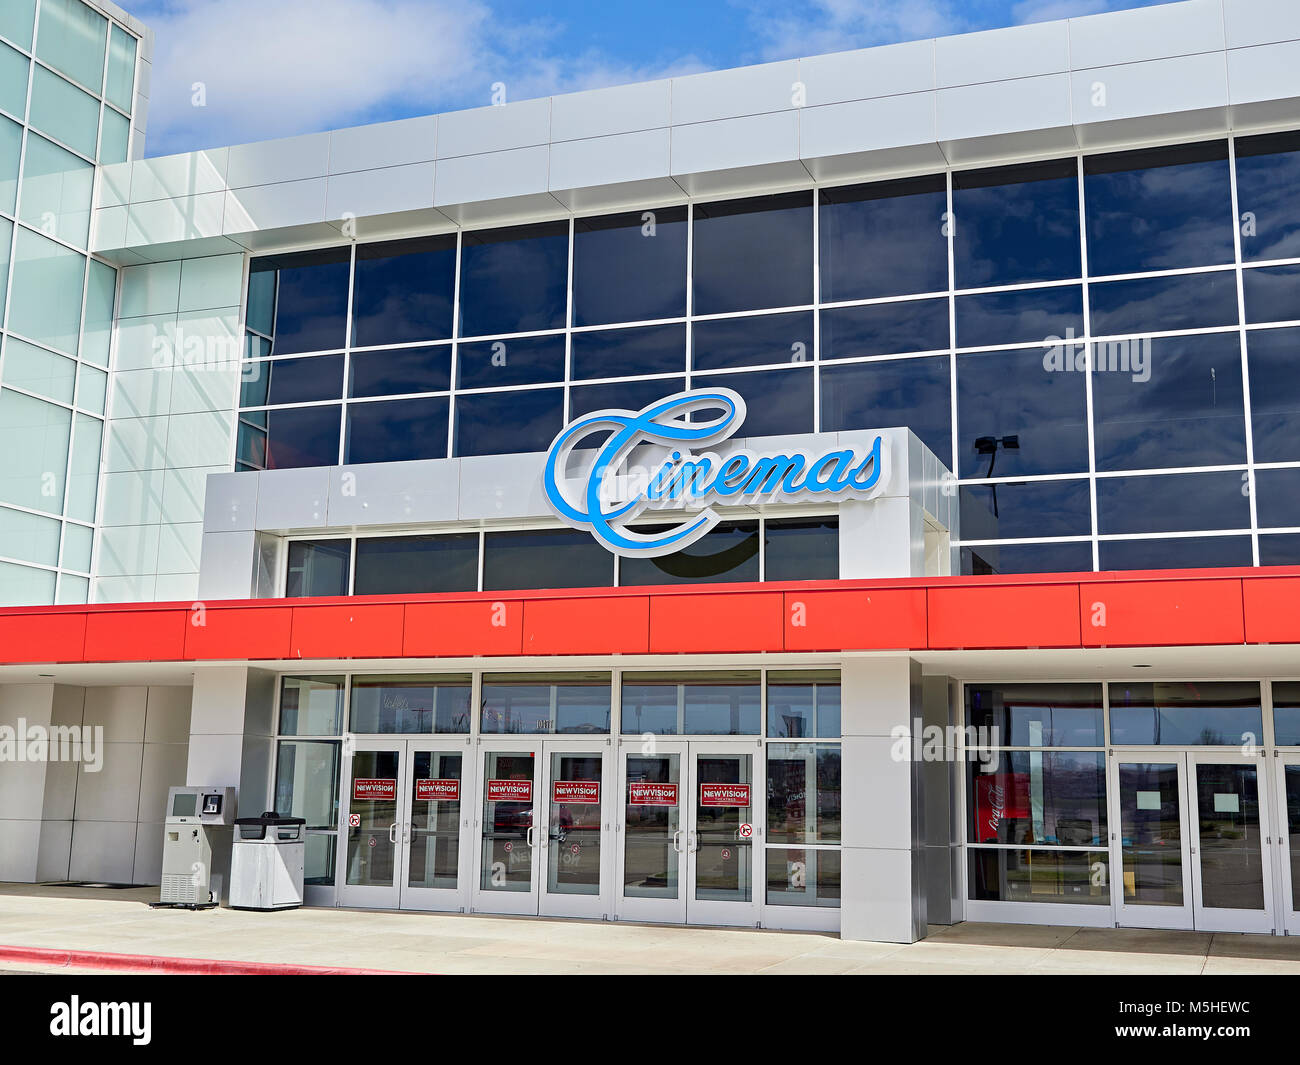 Movie theater or cinema exterior entrance sign at the Chantilly Carmike 13 movie theater in Montgomery, Alabama, - Stock Image